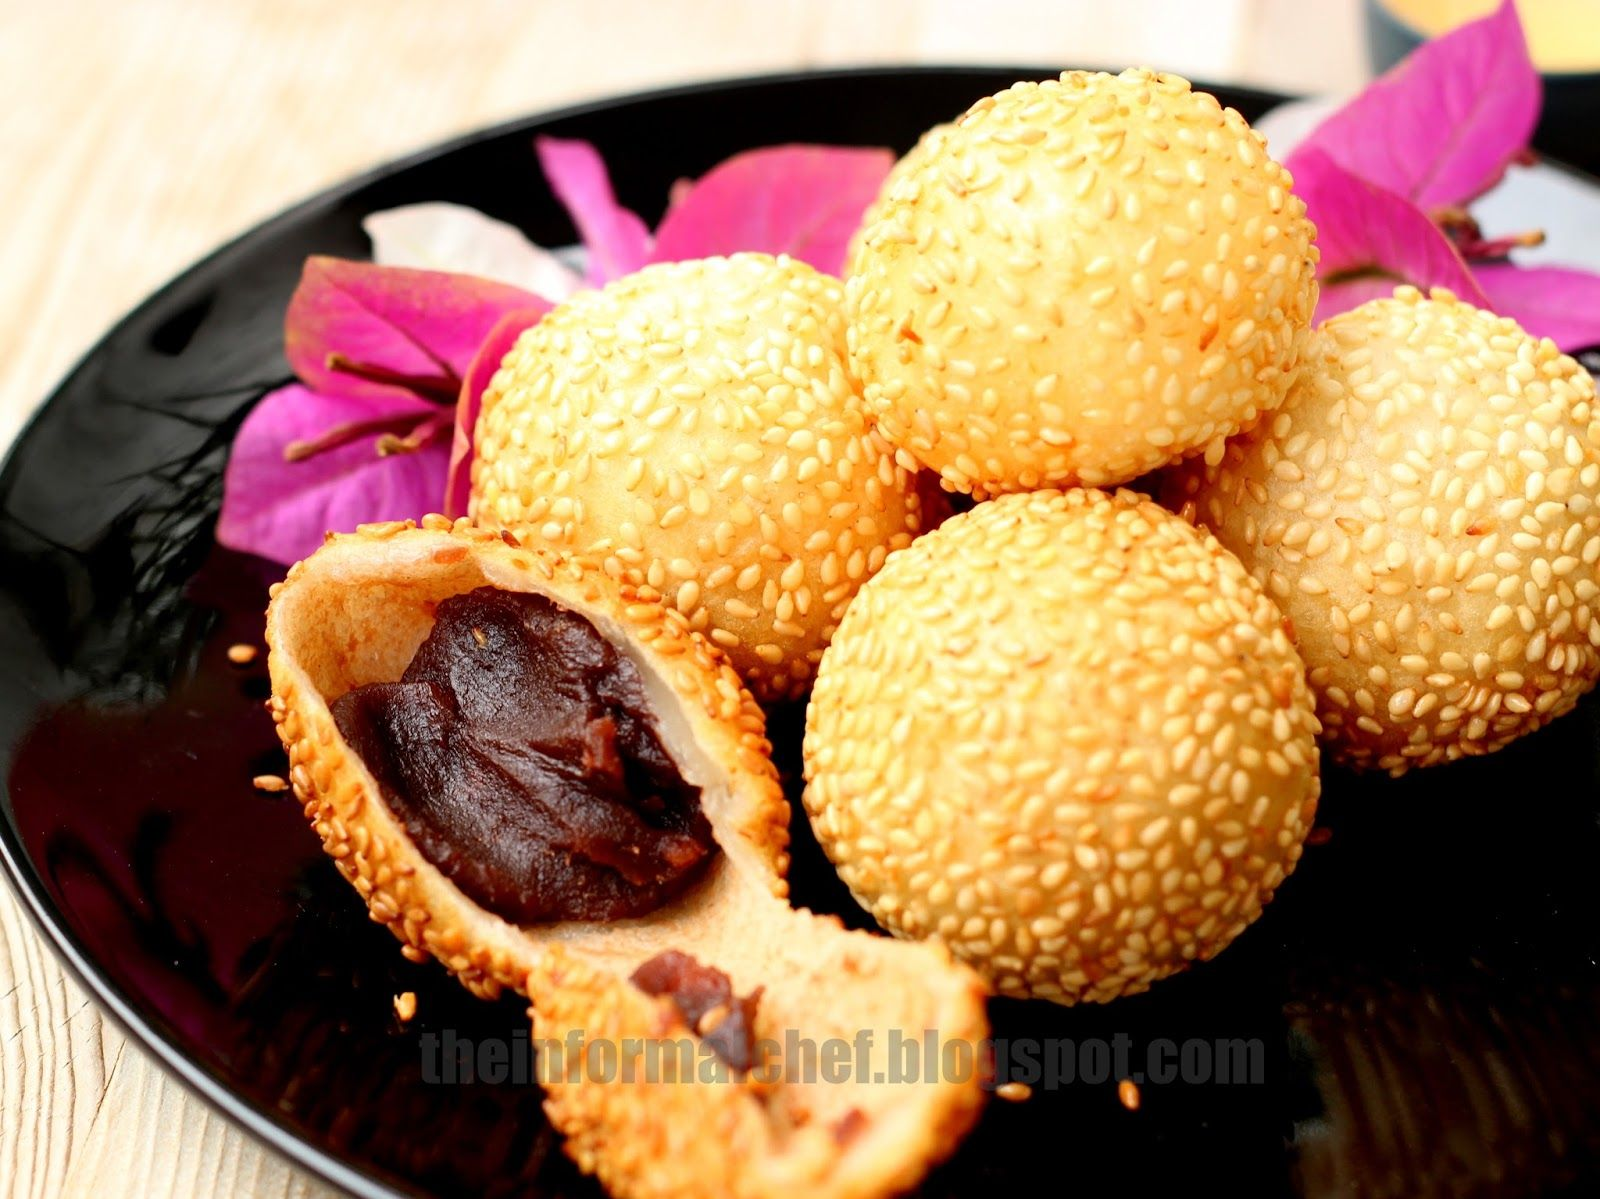 Sesame balls jin dui dim sum chinese bun and food jin dui is a must have item in traditional chinese households during chinese new year buycottarizona Images